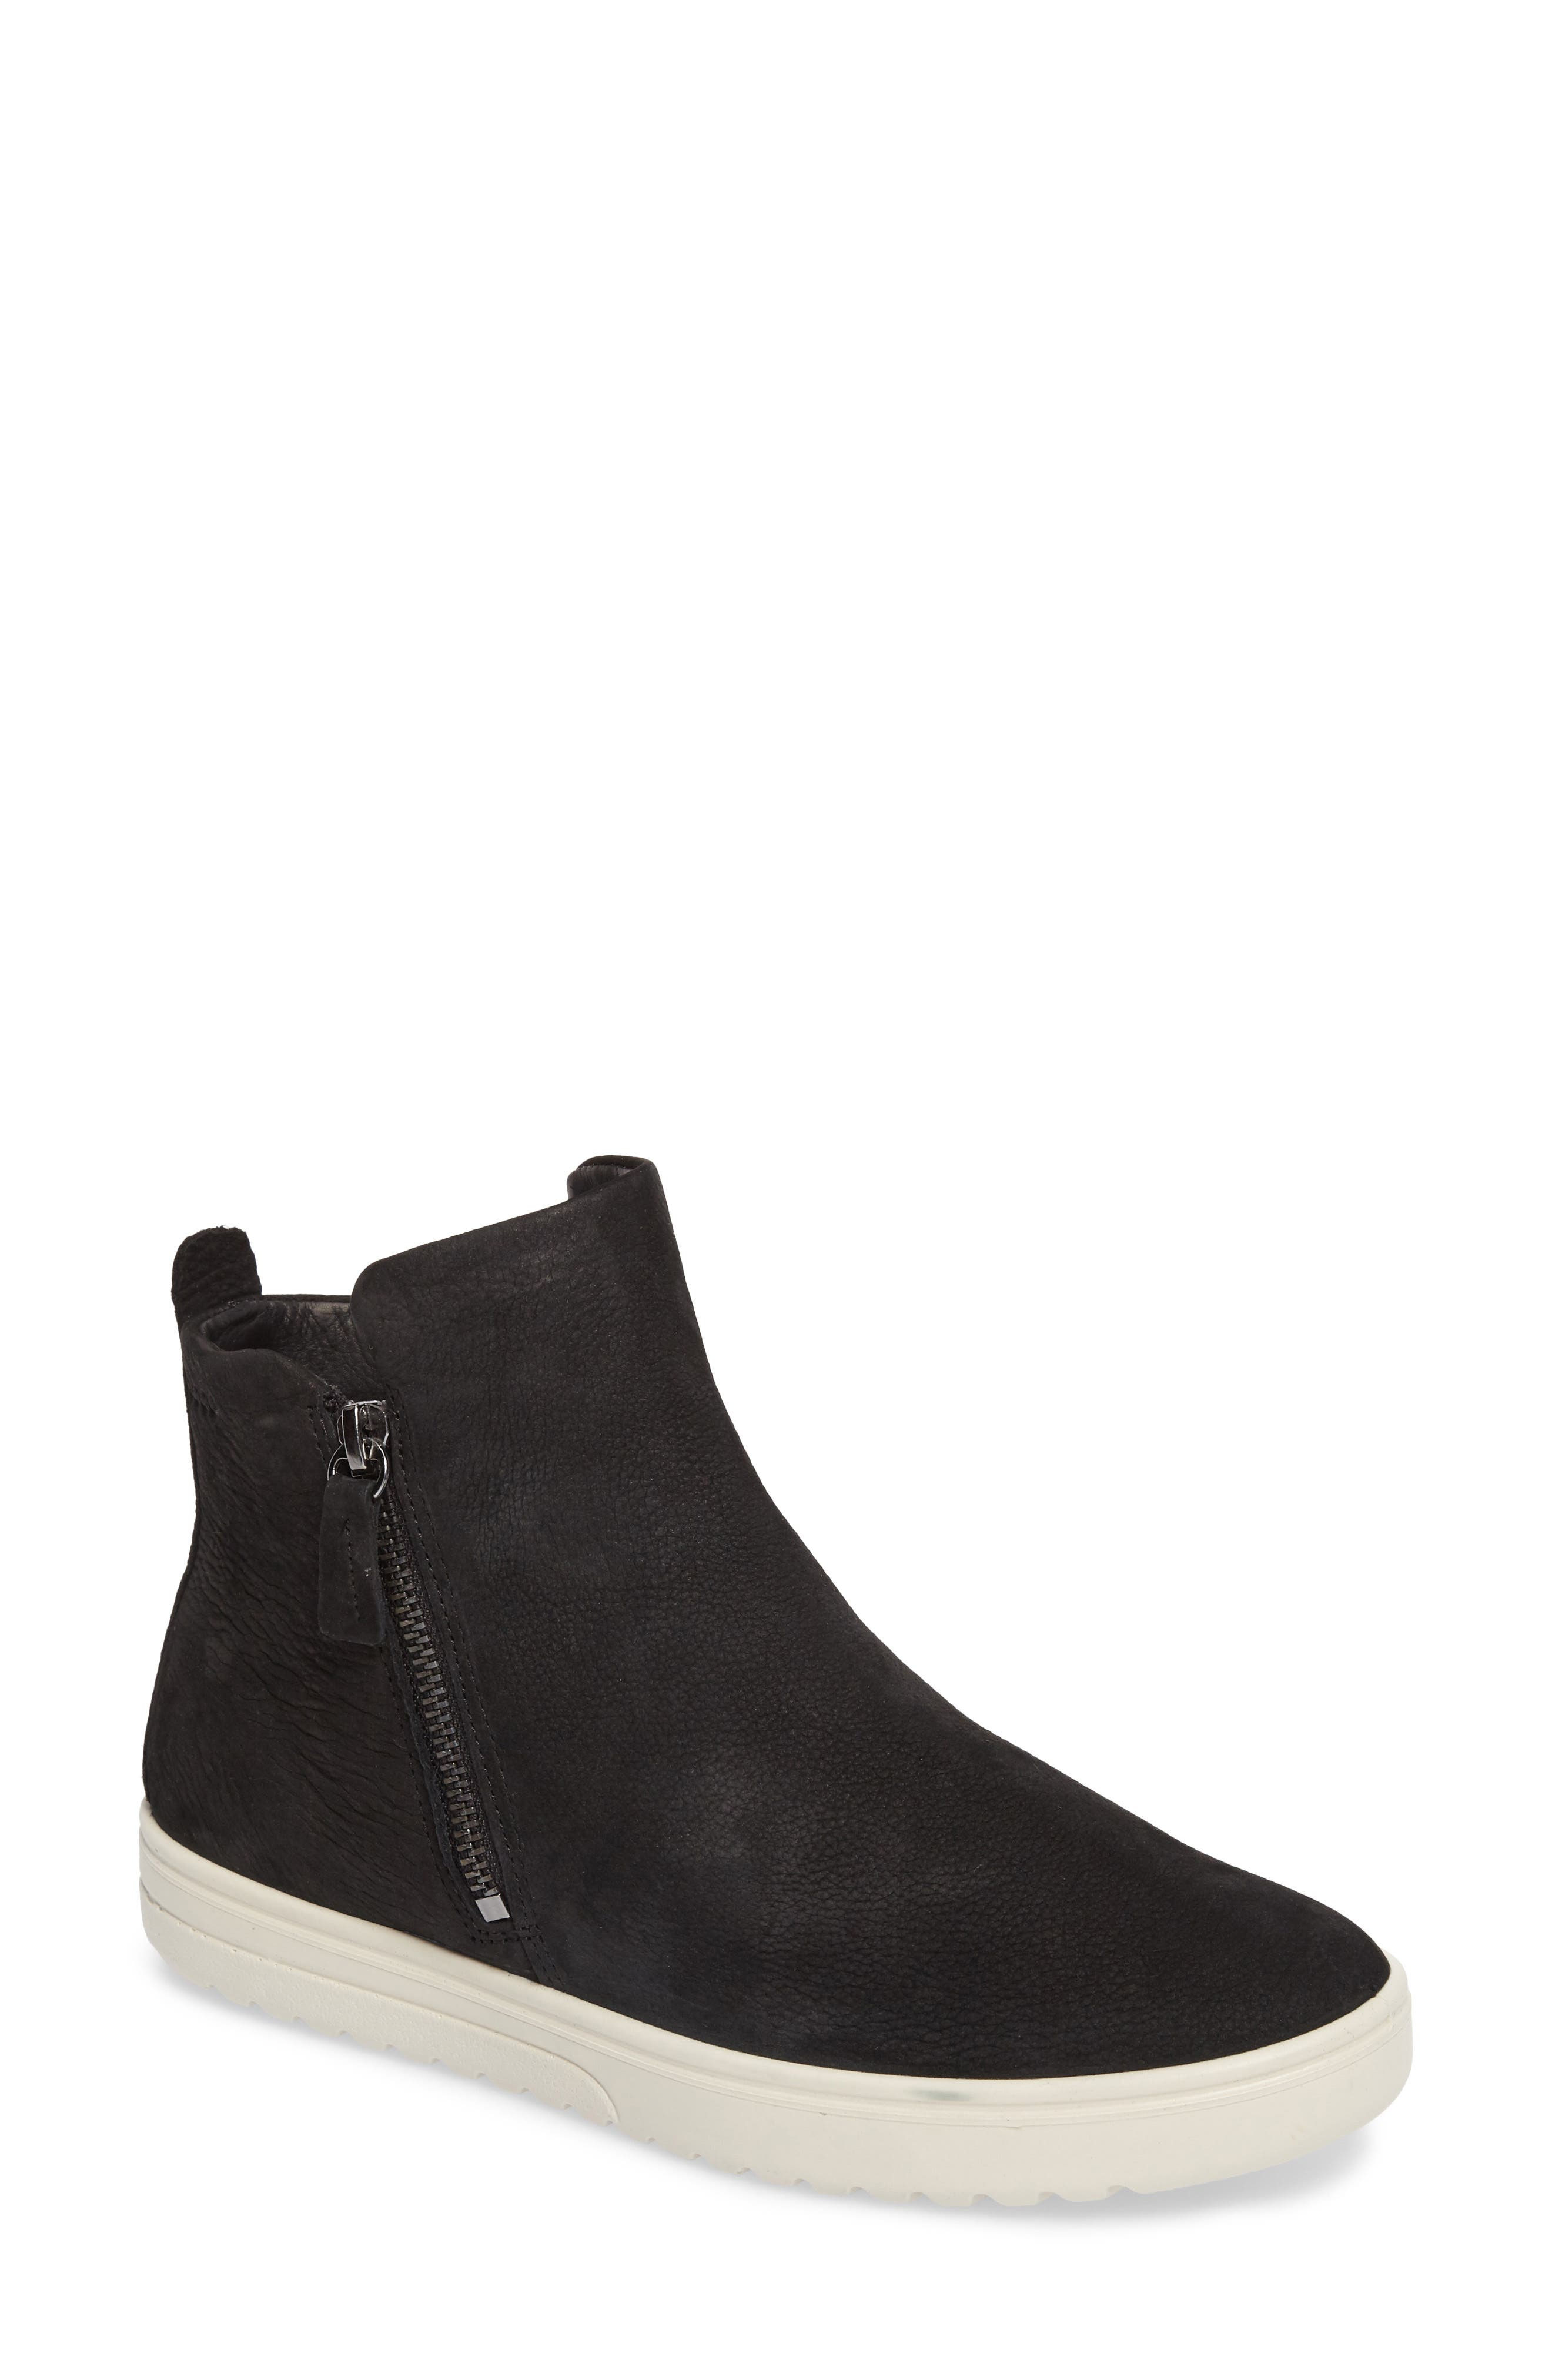 Fara Bootie,                         Main,                         color, Black Leather